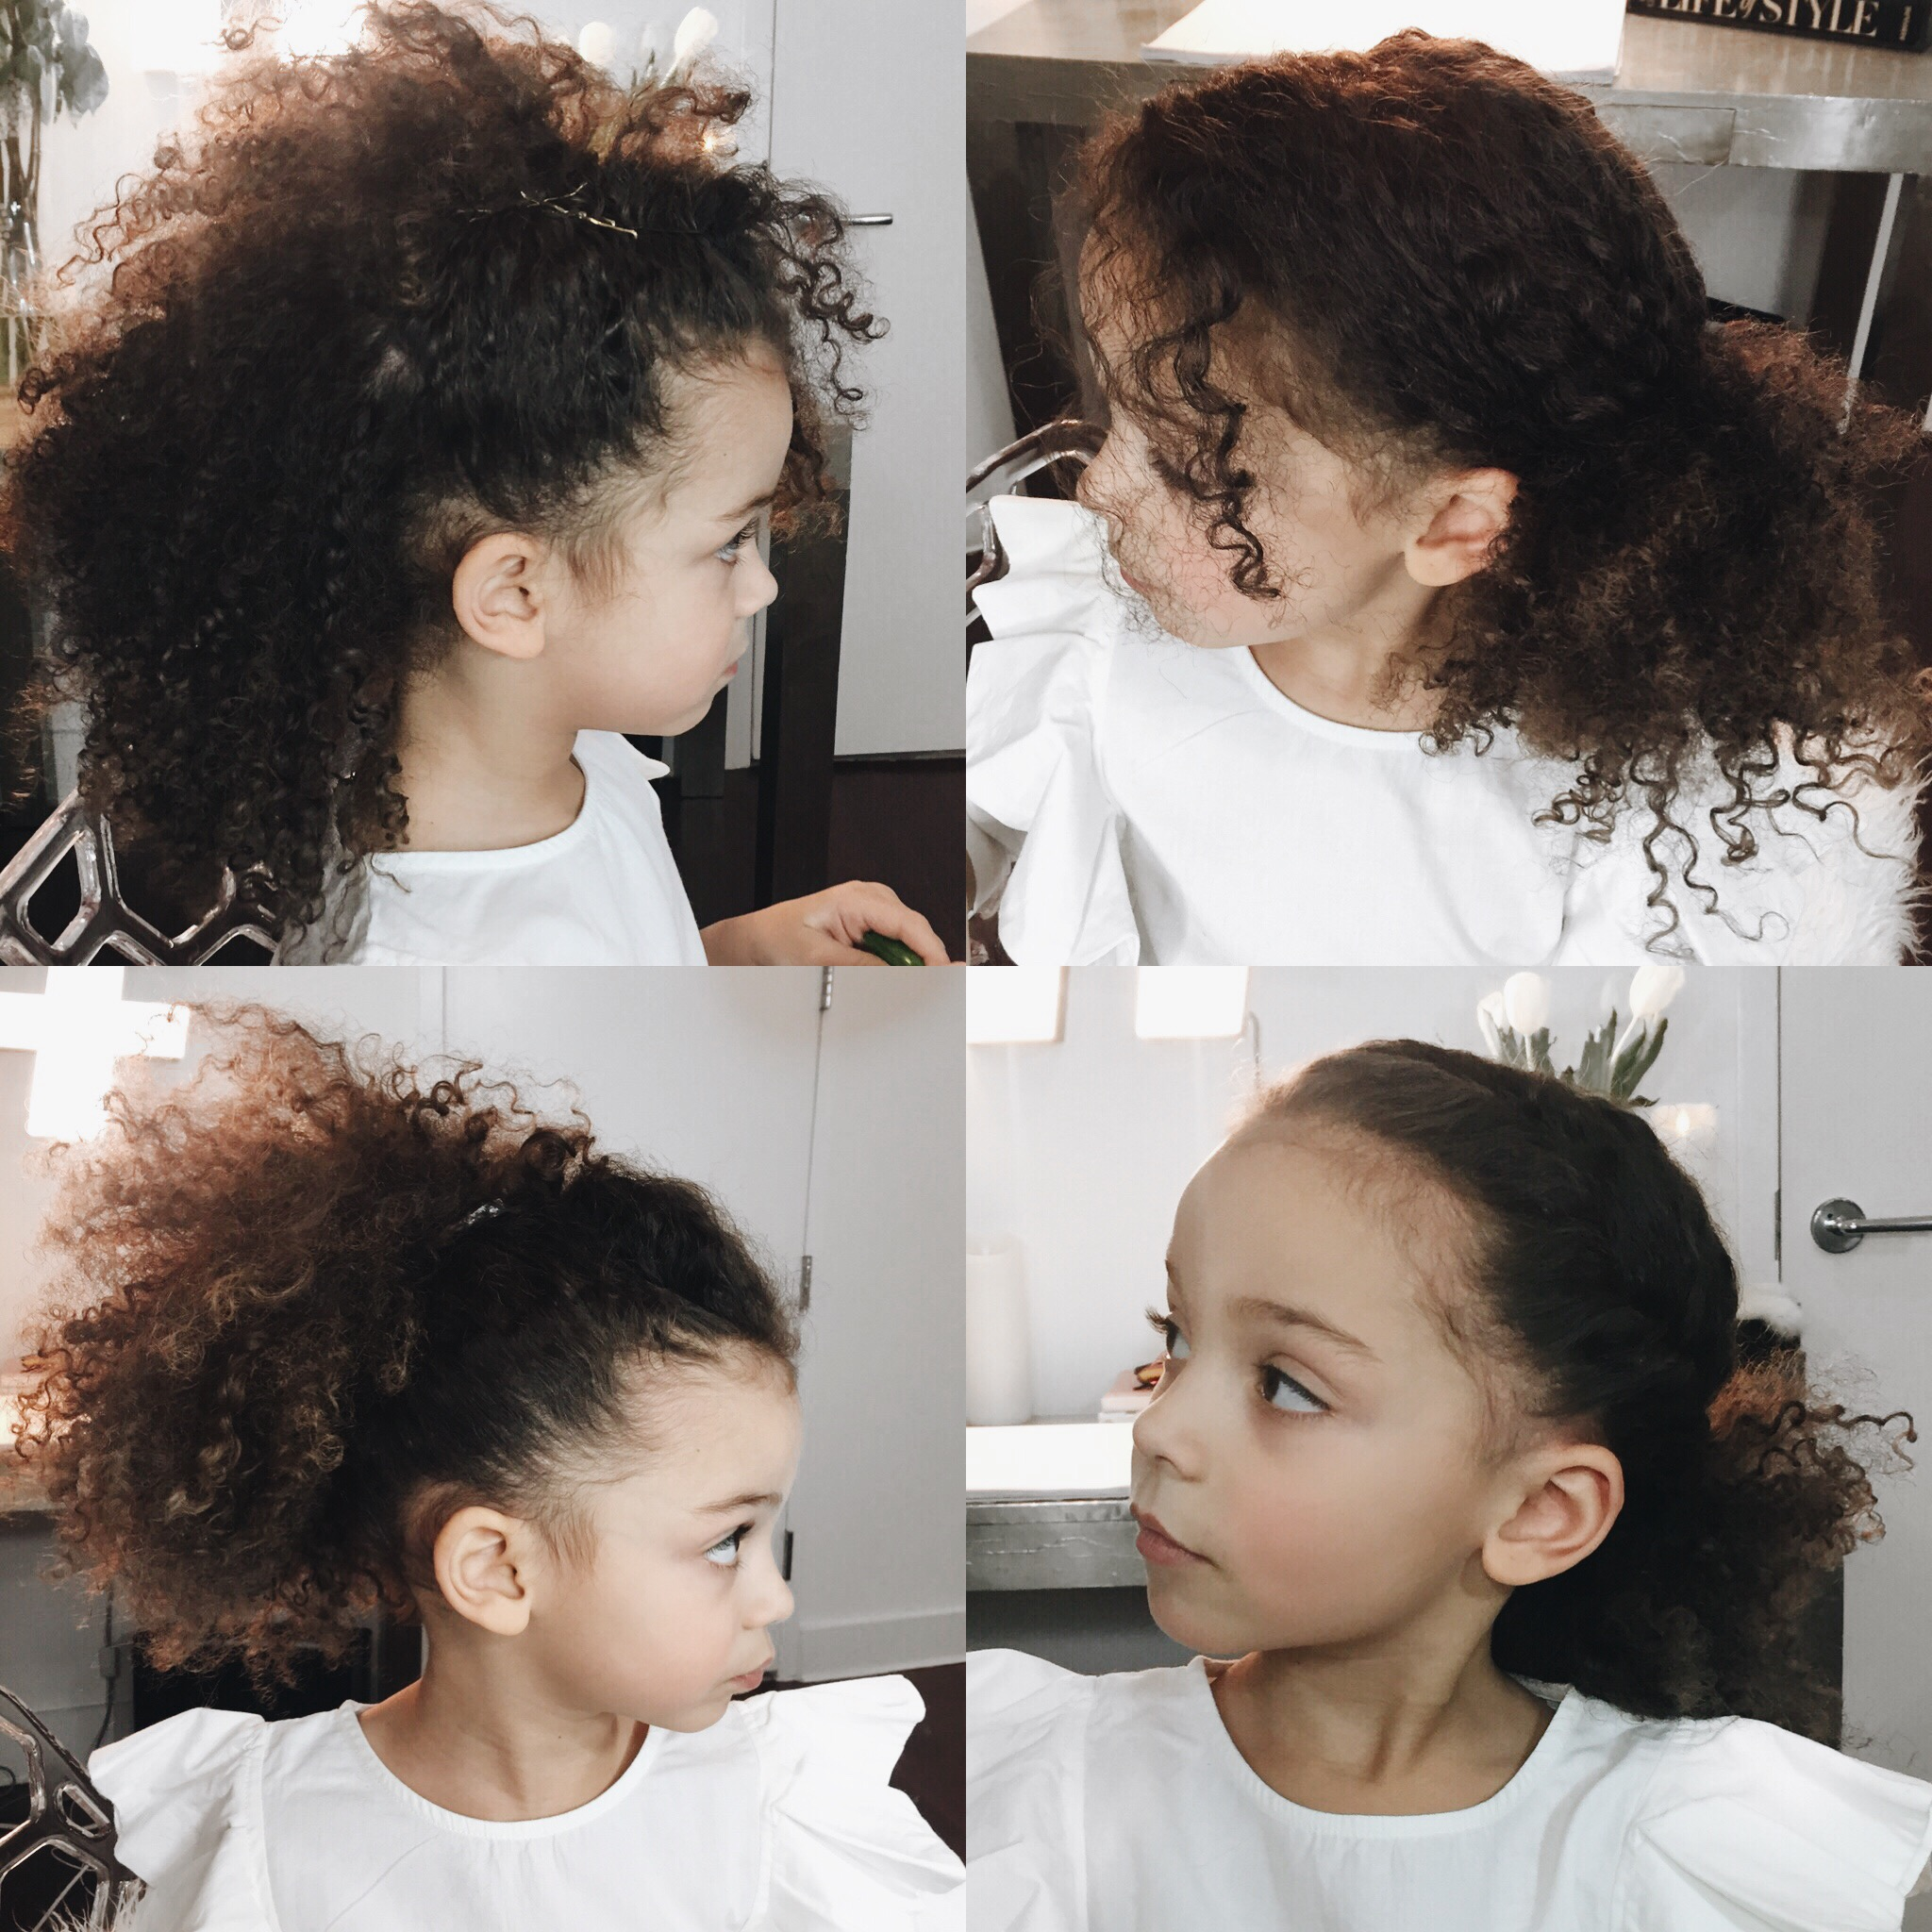 7 Hairstyles for kids